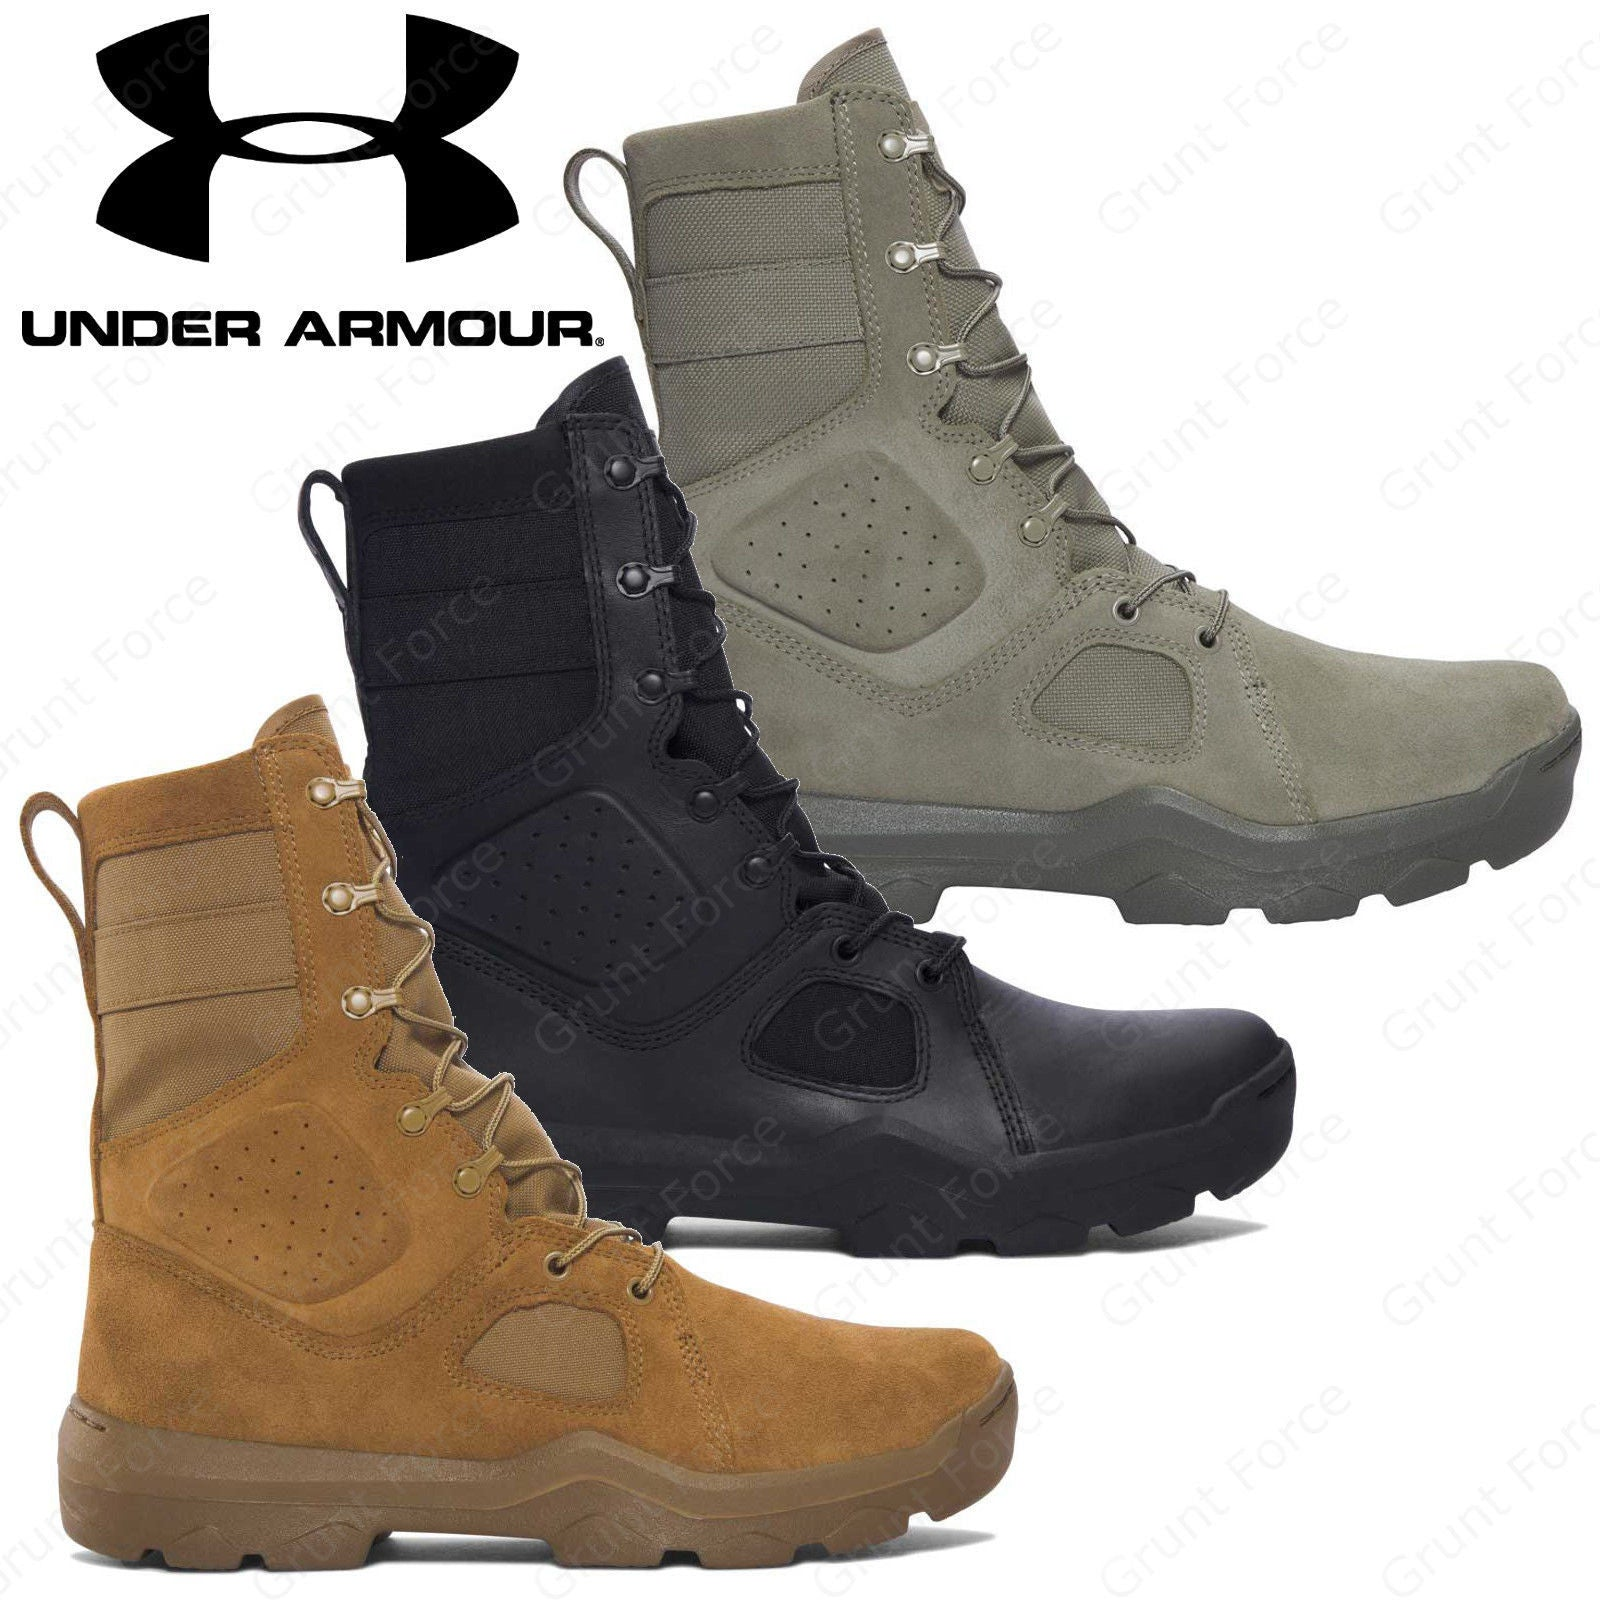 under armour fnp boots off 55% - www